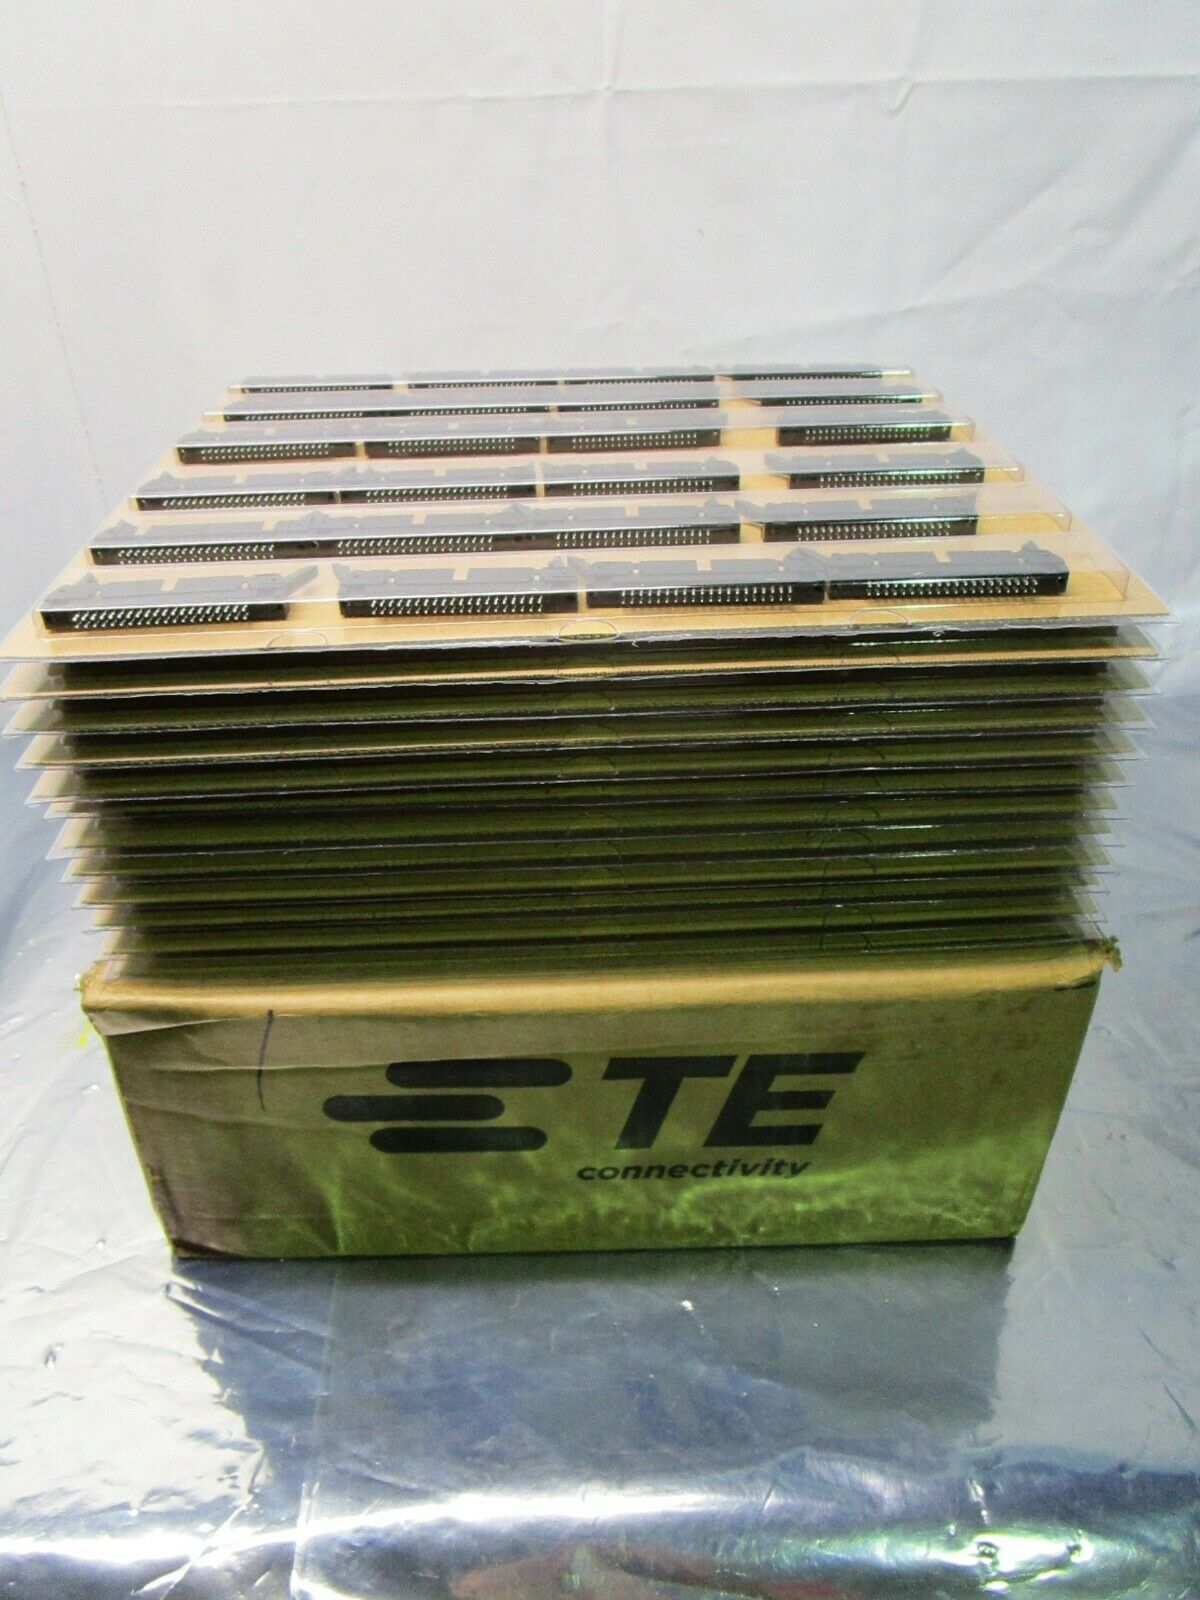 1 Lot of 288 102555 TE connectivity/AMP 5746443-9 Headers & Wire Housings,102555